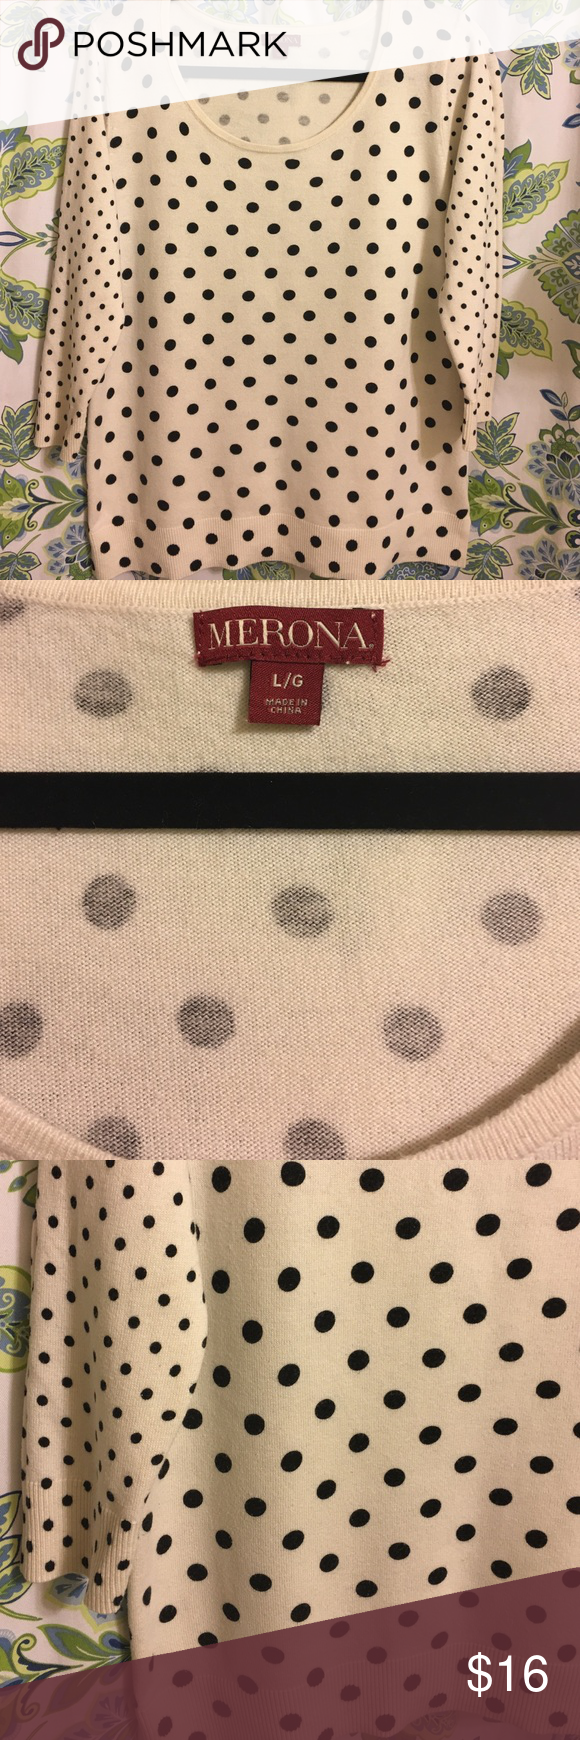 MERONA  Size L. SWEATER Preowned in perfect condition fits good to size L .Machine wash . Merona Sweaters Crew & Scoop Necks